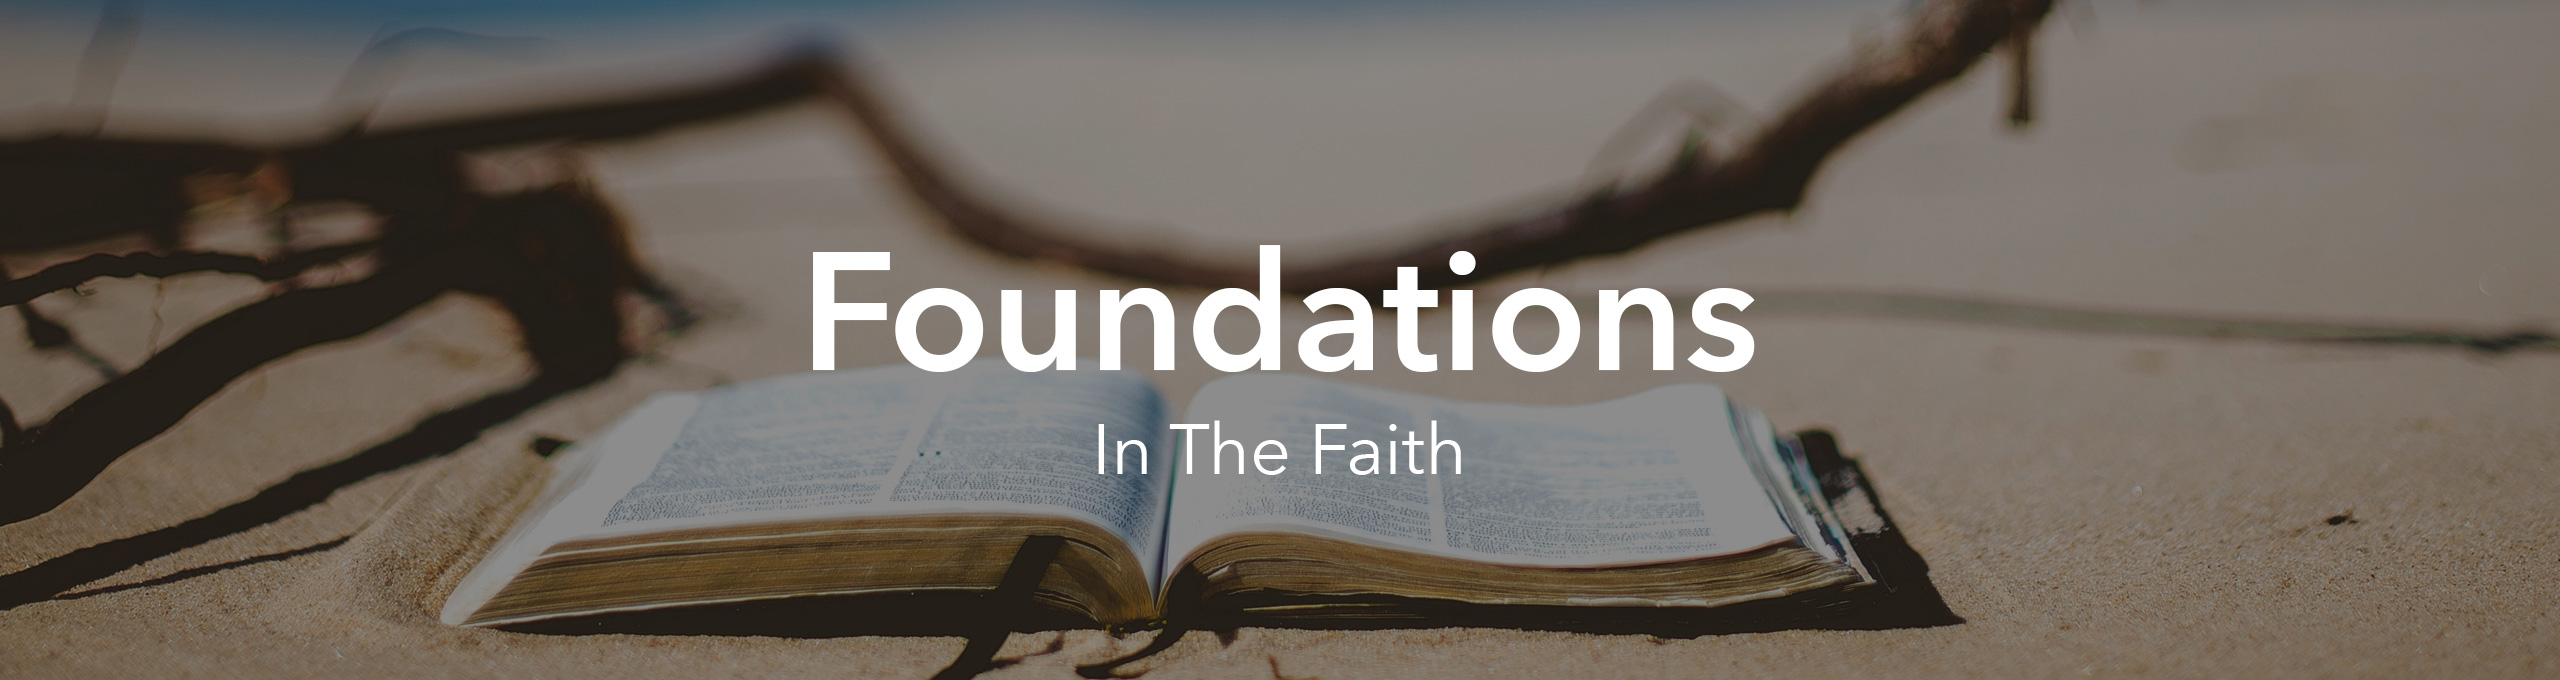 New Believers (Foundations in the Faith)